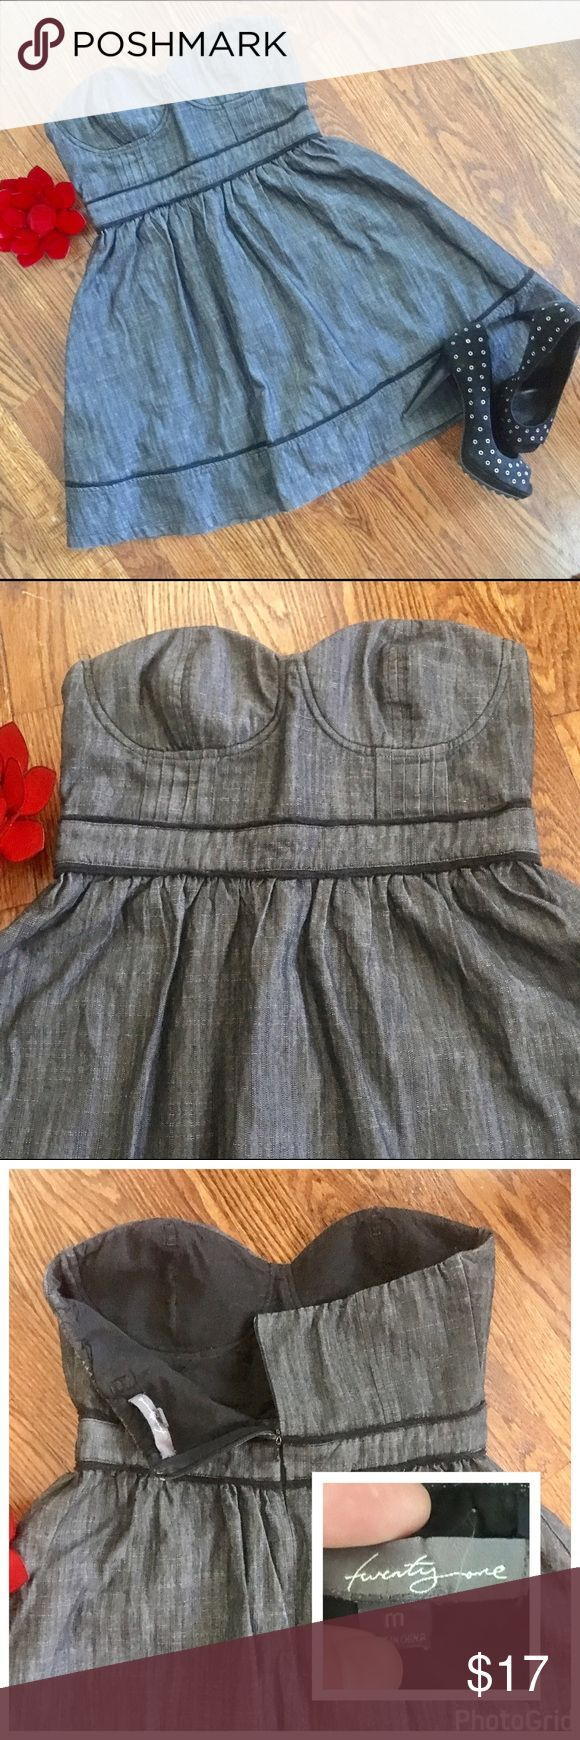 Forever 21 M gray dress pinup strapless sweetheart This hot little number is just too darling!! 😍 Gray in color with black trim (cover photo looks more blue but the true gray color is the zoomed look of the top of the dress) . Excellent preloved condition. Sz M. Forever 21 Dresses Mini